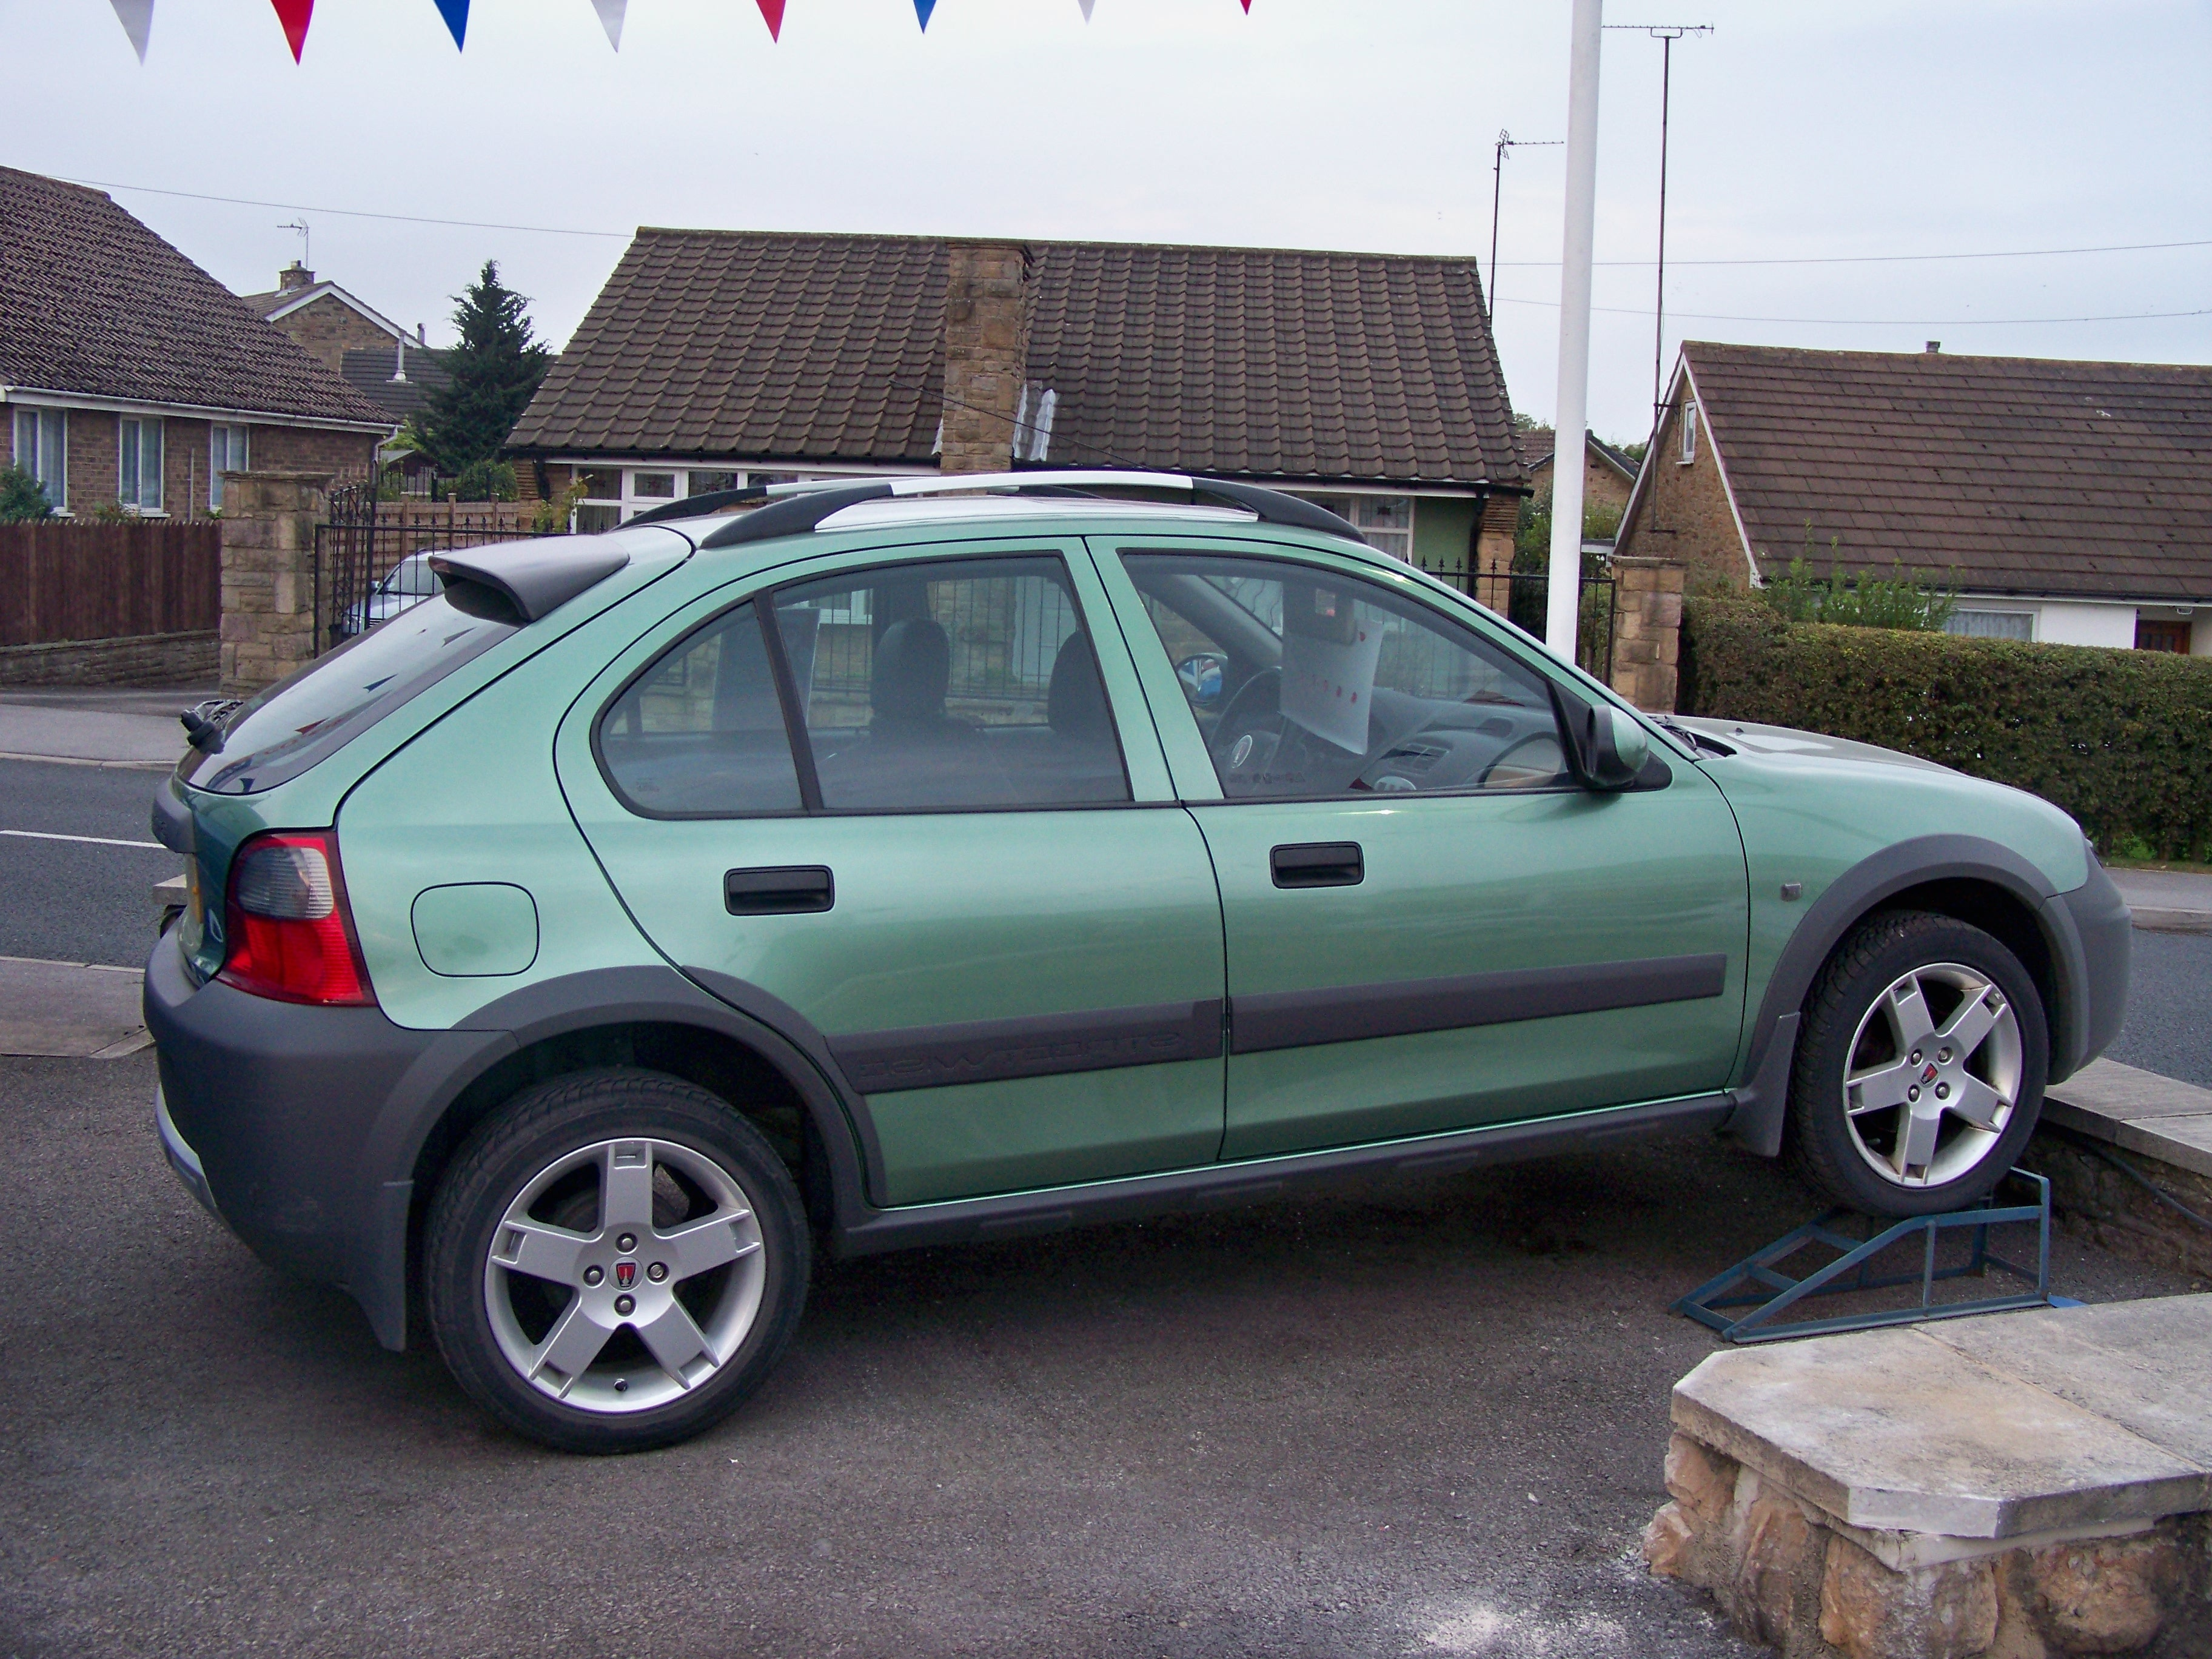 2008 Rover Streetwise #16